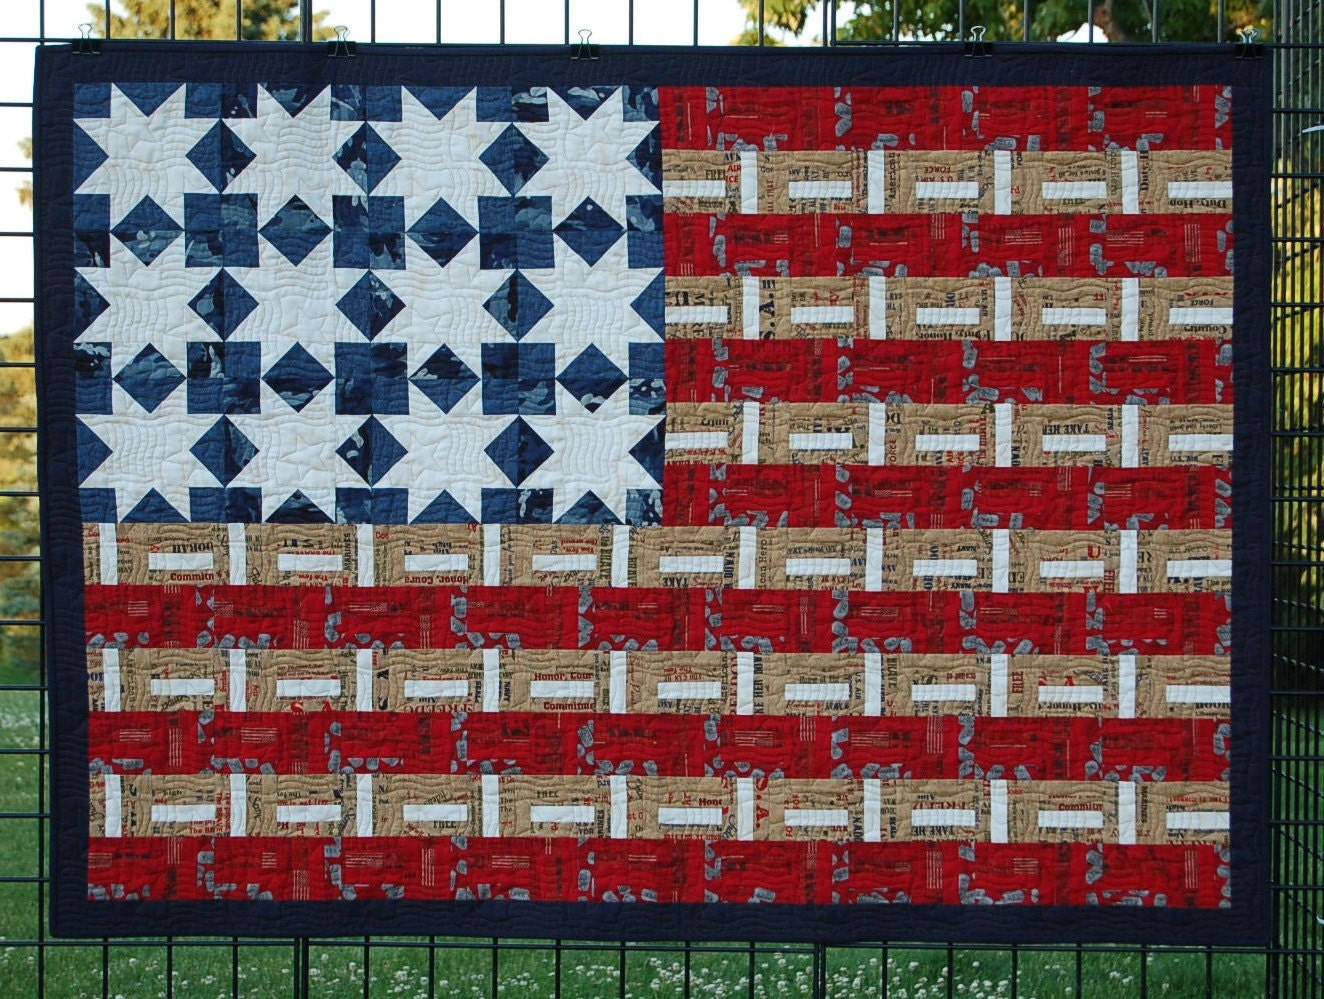 Red White and Blue Quilt for Sale Land of the Free is a